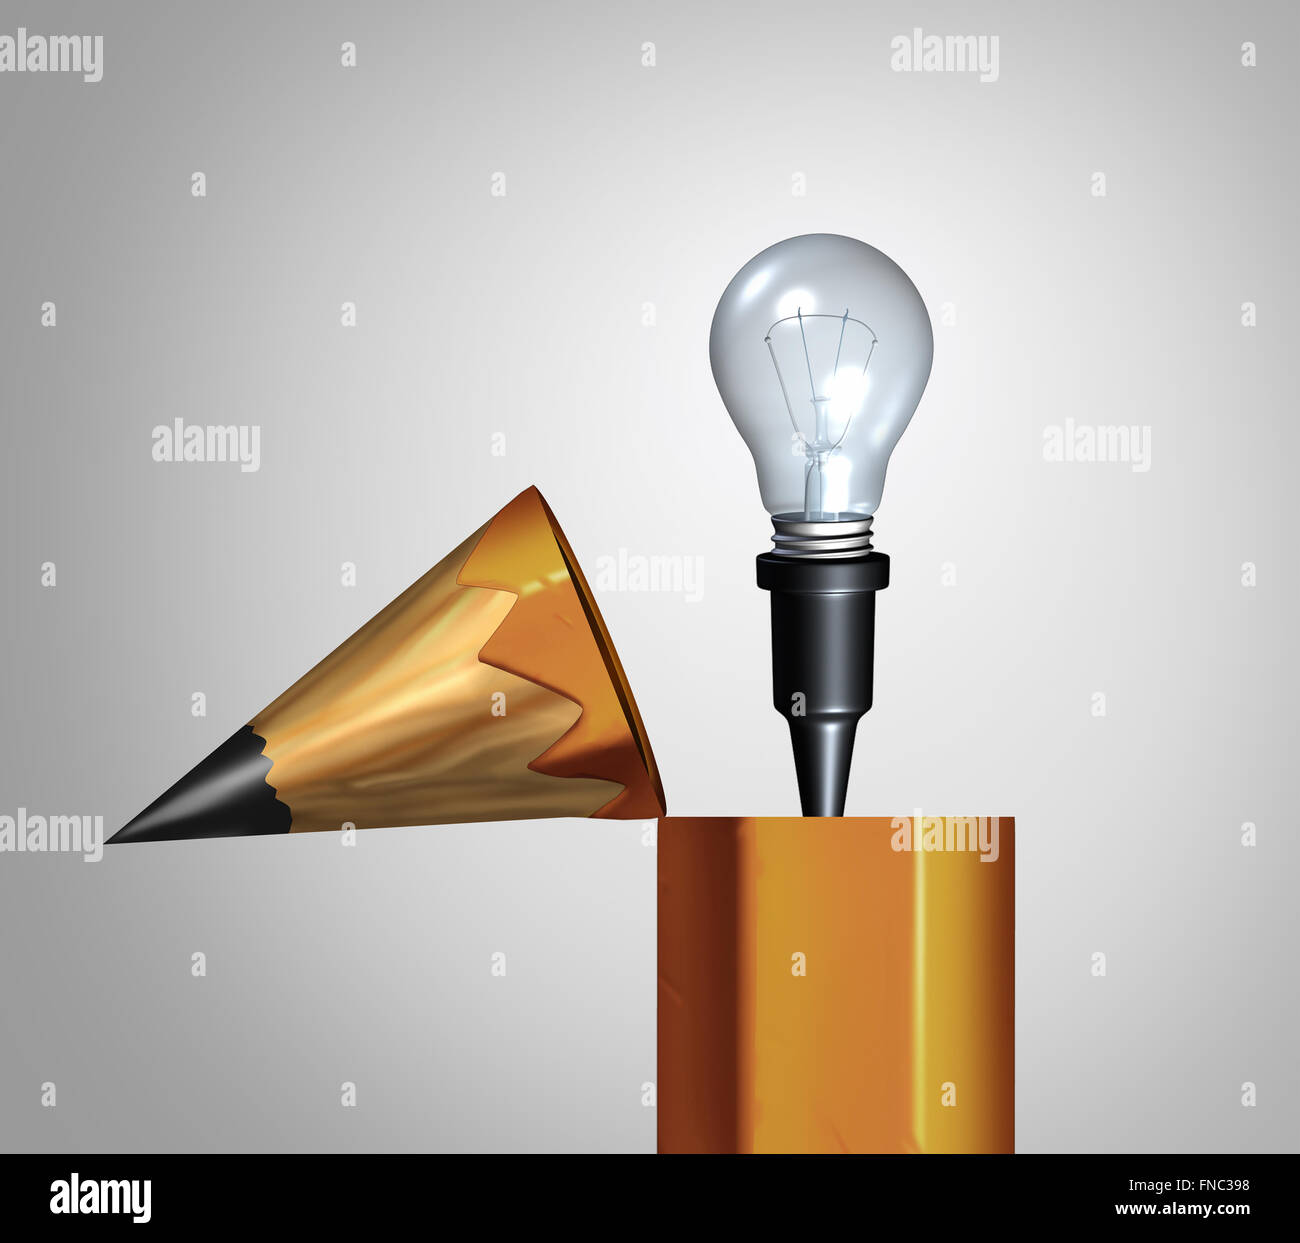 Idea pencil concept as an open drawing instrument with an emerging bright illuminated lightbulb or light bulb as - Stock Image